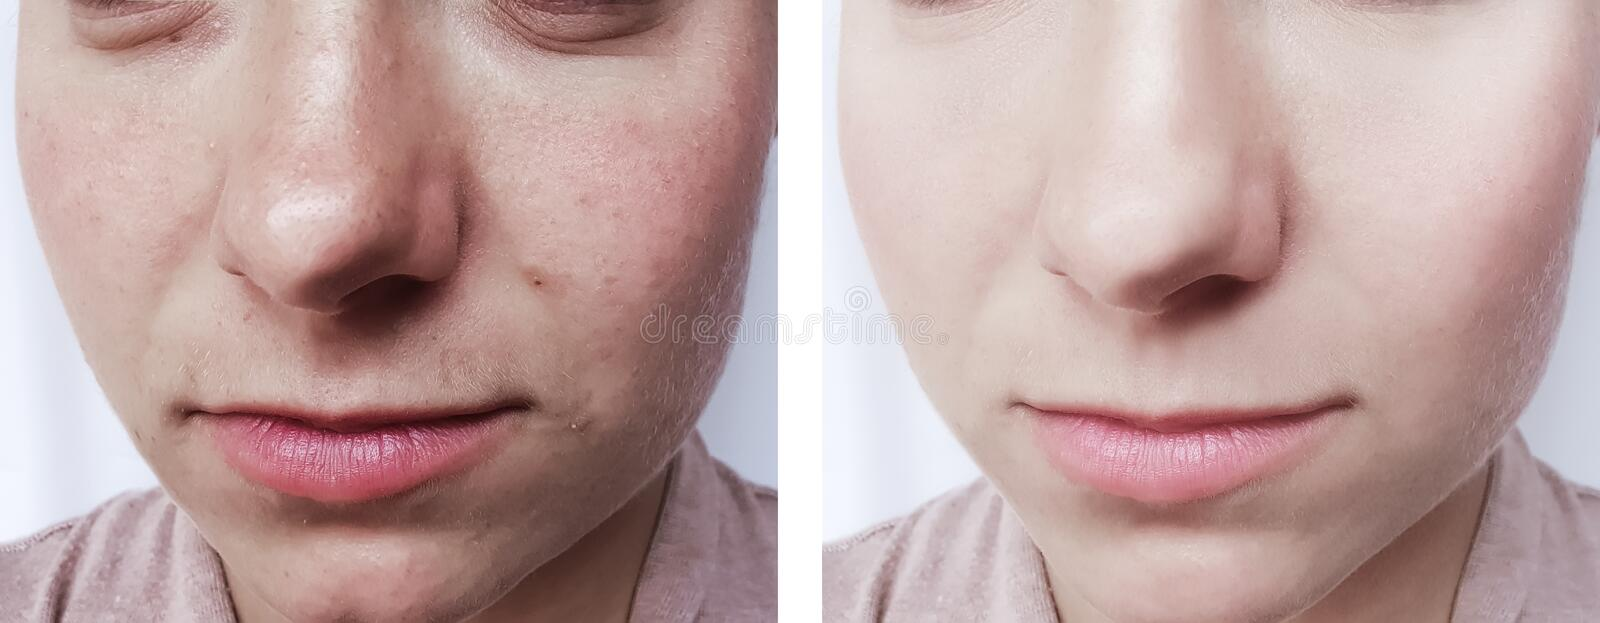 girl beauty wrinkles eyes removal before and after cosmetology procedures stock images